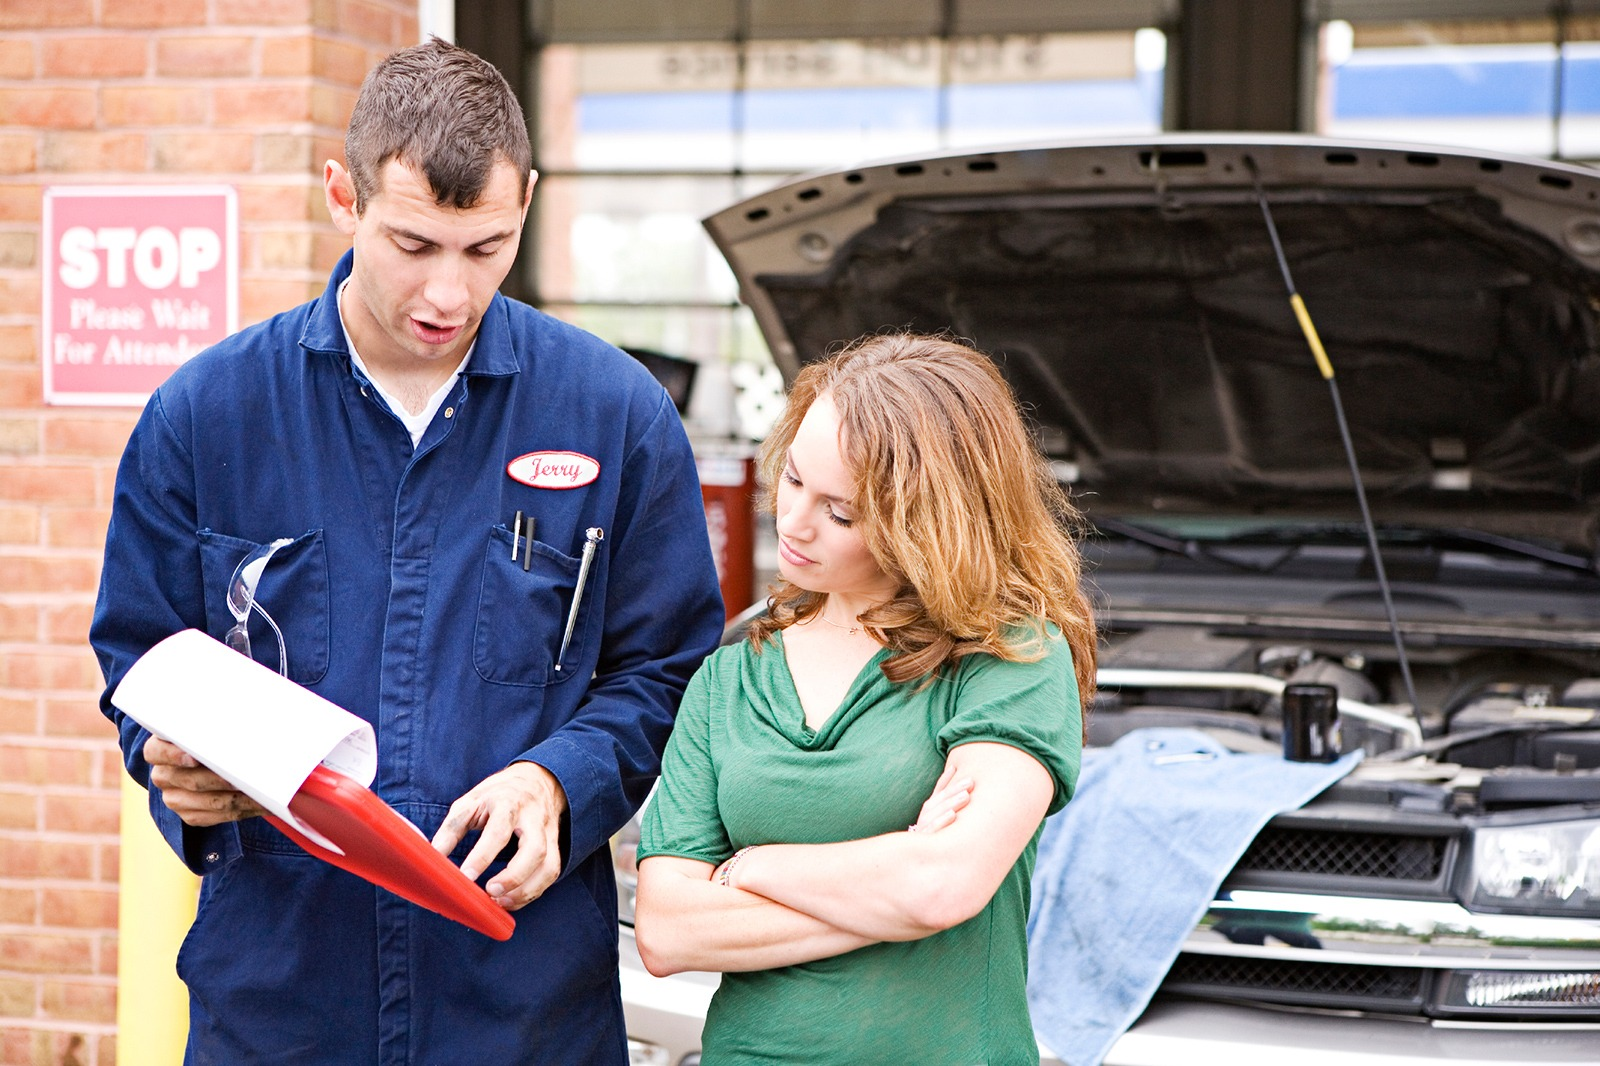 7 Tips for Finding an Awesome Mechanic